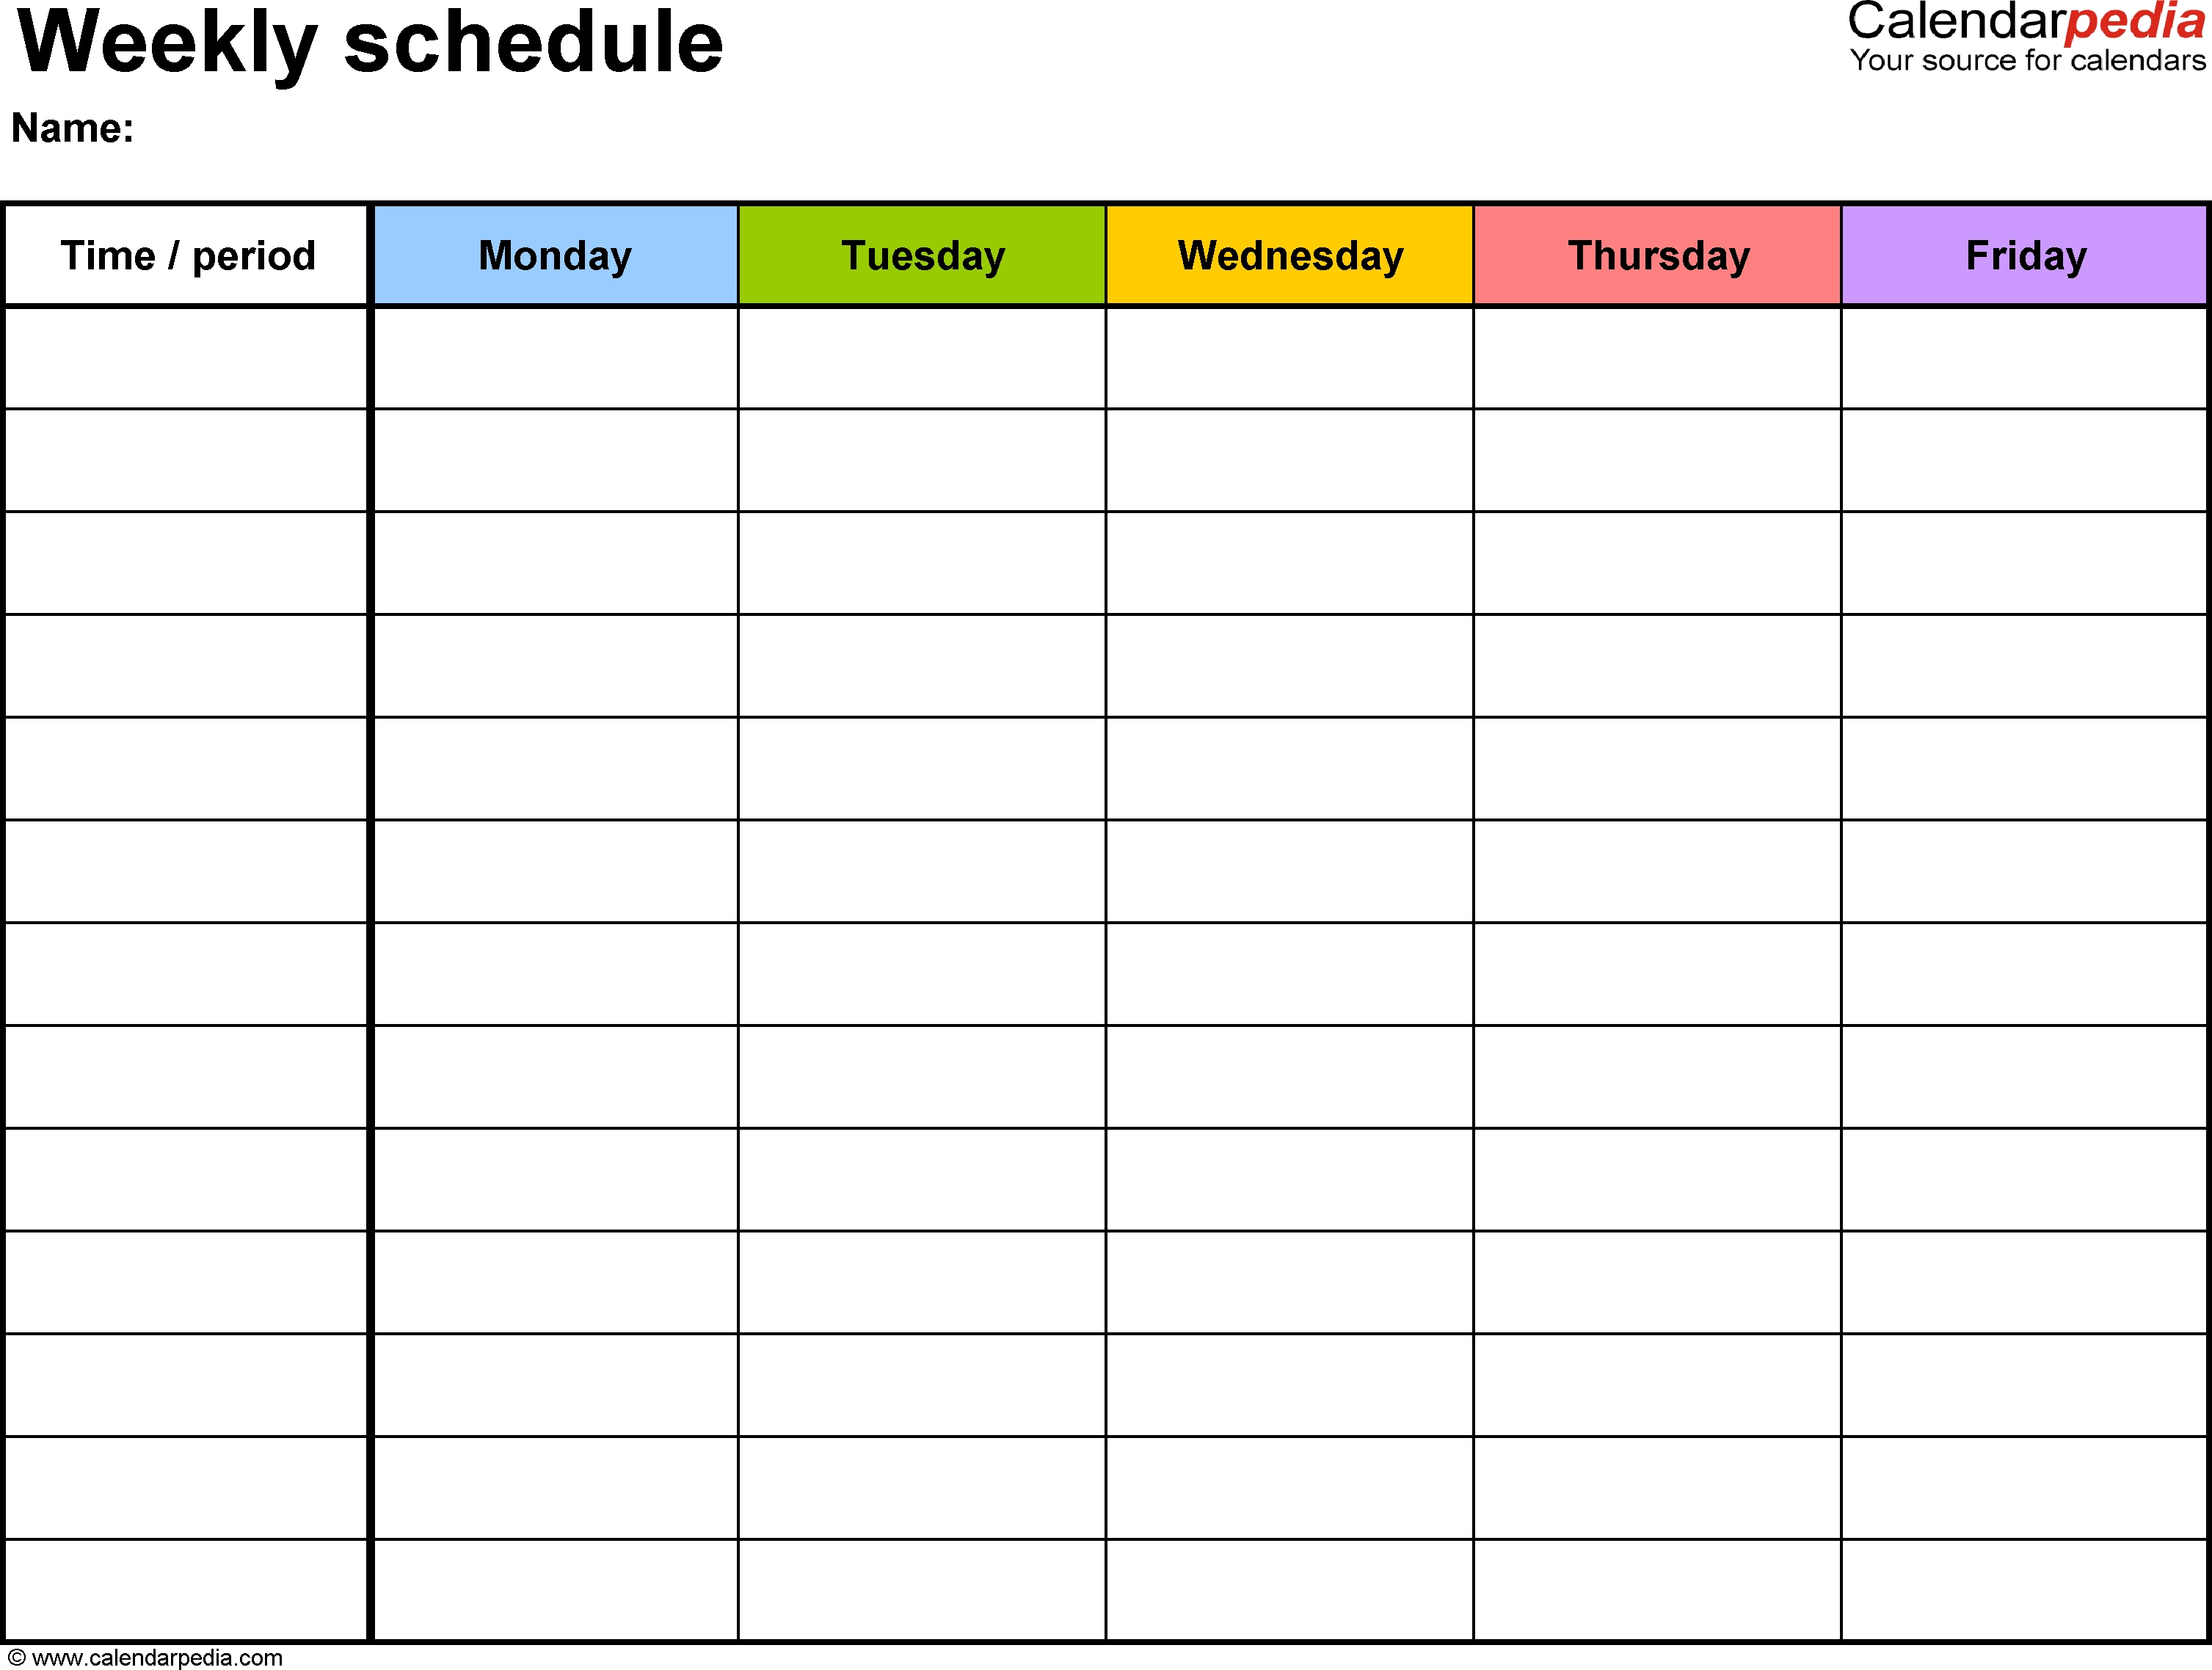 Free Weekly Schedule Templates For Word - 18 Templates with regard to Monday To Friday Schedule Printable